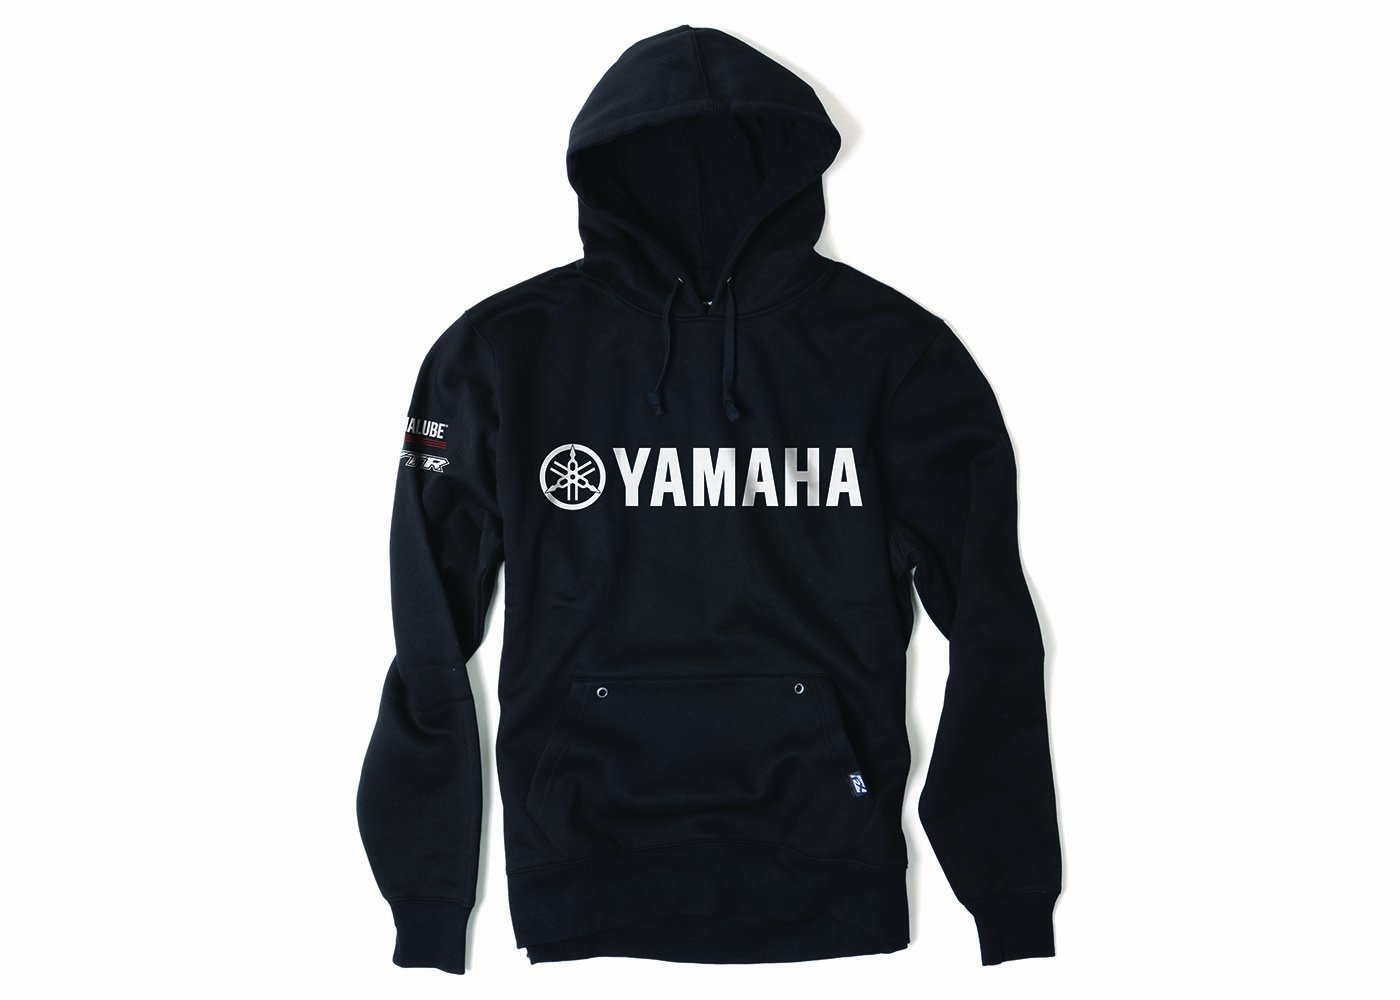 Factory Effex 16-88236 'YAMAHA' Team Pullover Sweatshirt (Black, X-Large)